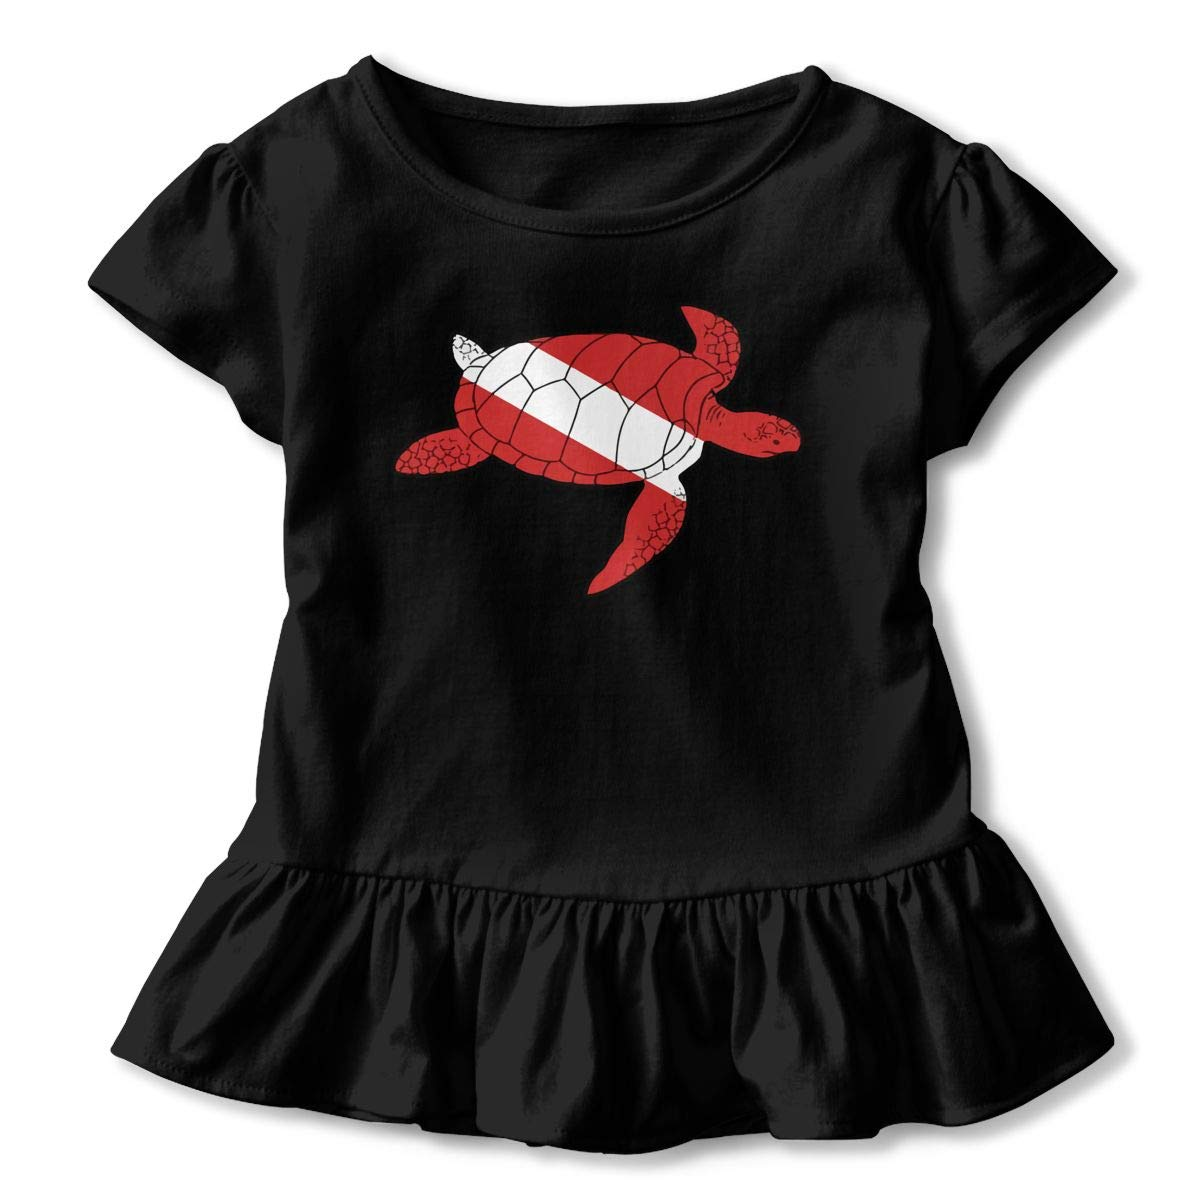 Sea Turtle Shaped Scuba Dive Flag Childrens Girls Short Sleeve T-Shirts Ruffles Shirt T-Shirt for 2-6T